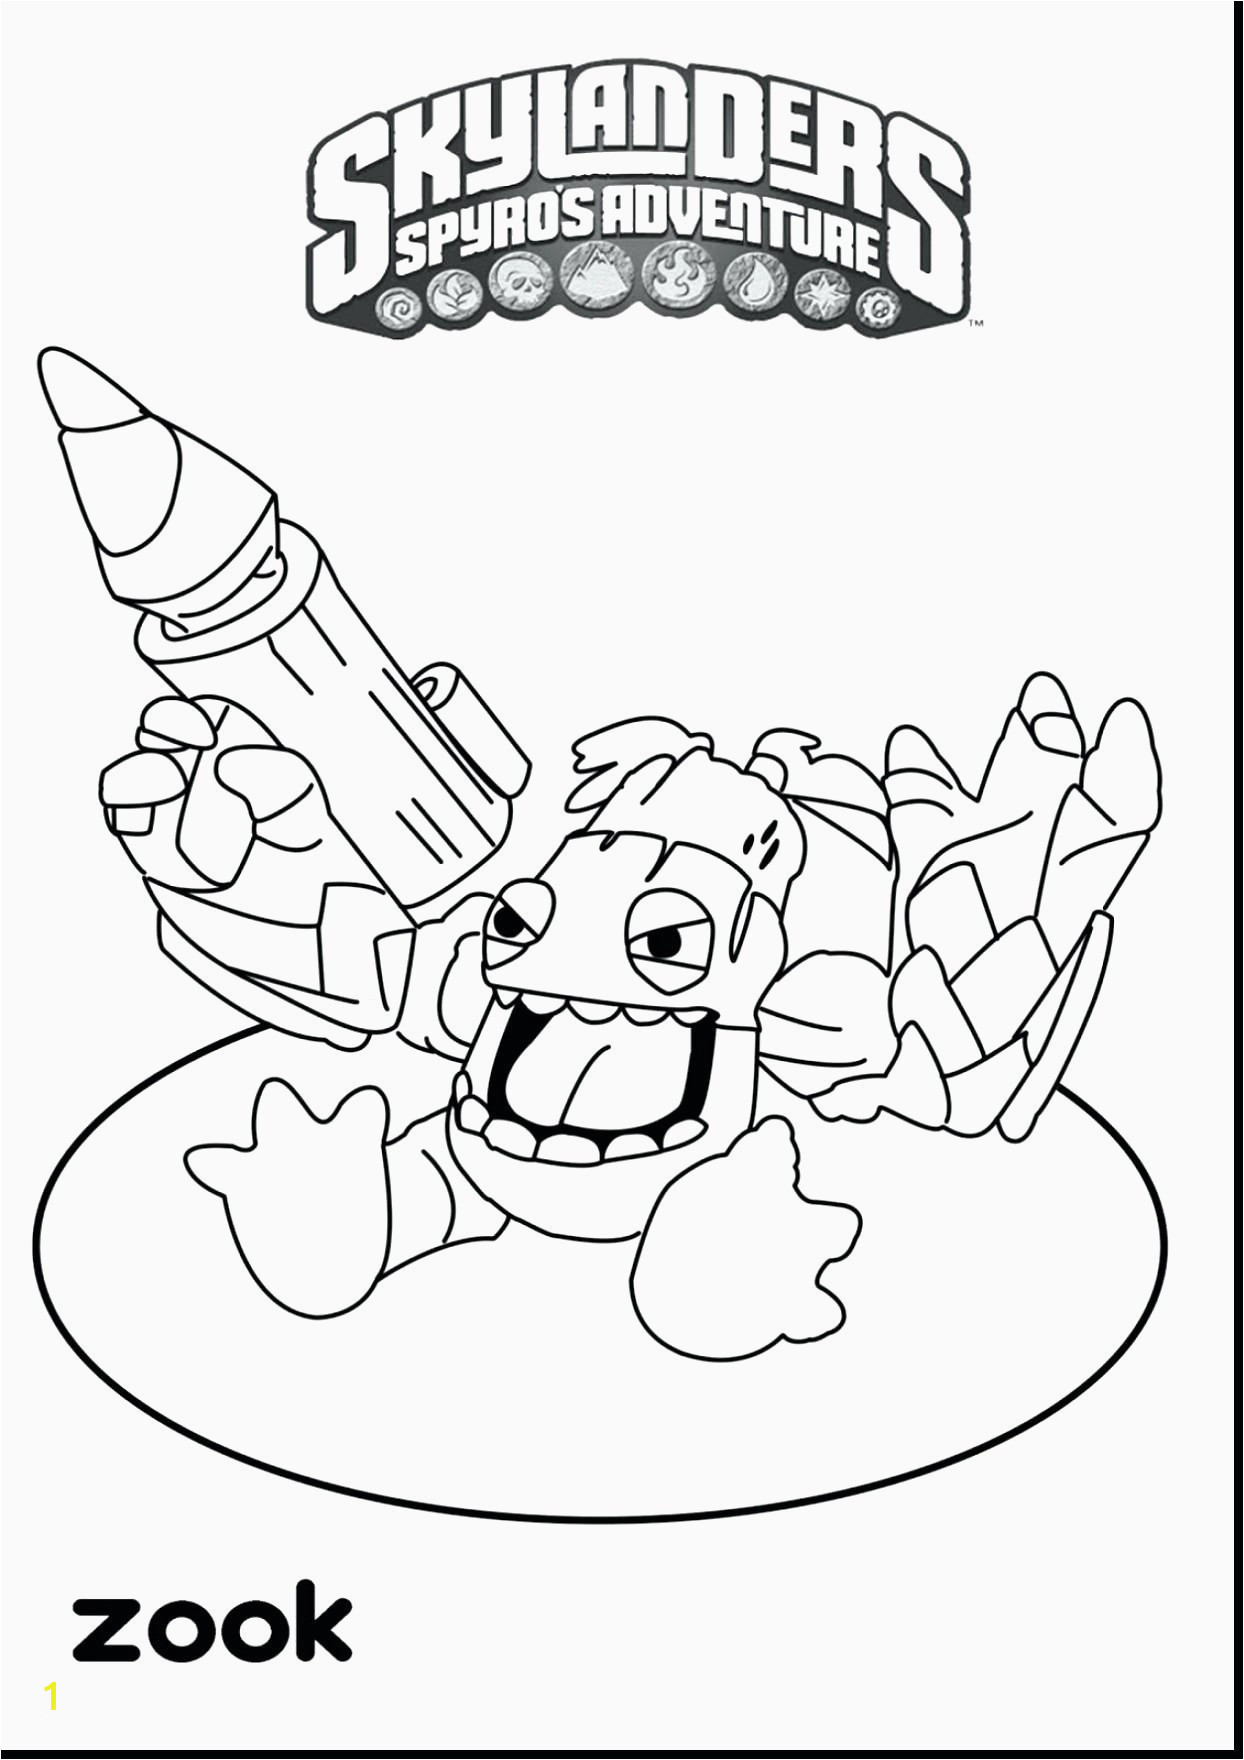 Bad Guy Coloring Pages Pages Brilliant Easy to Draw Instruments Home Coloring